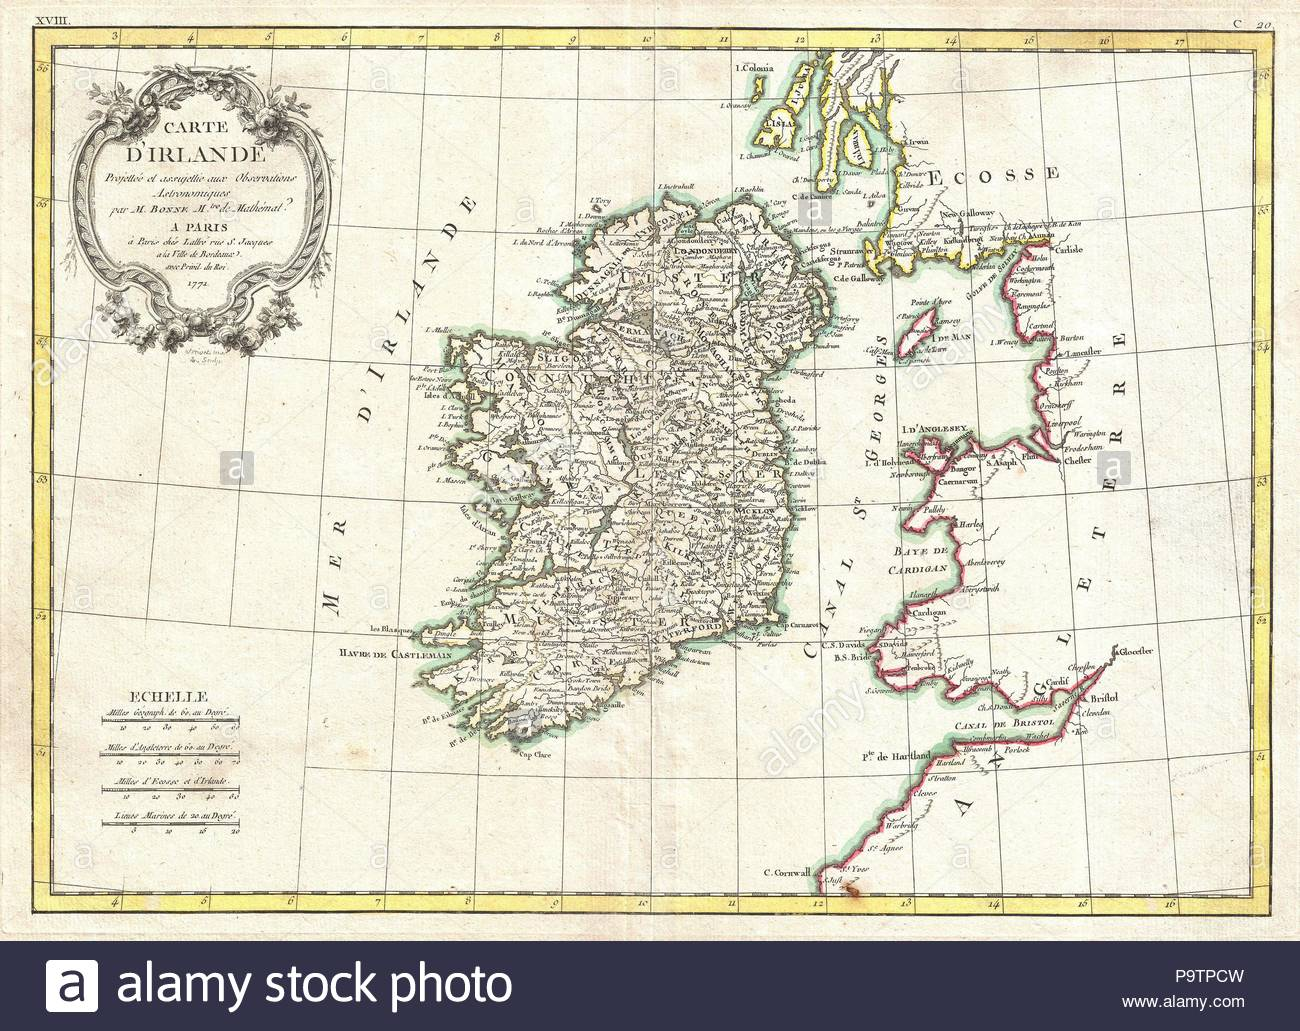 1771, Bonne Map of Ireland, Rigobert Bonne 1727 – 1794, one of the most important cartographers of the late 18th century. - Stock Image